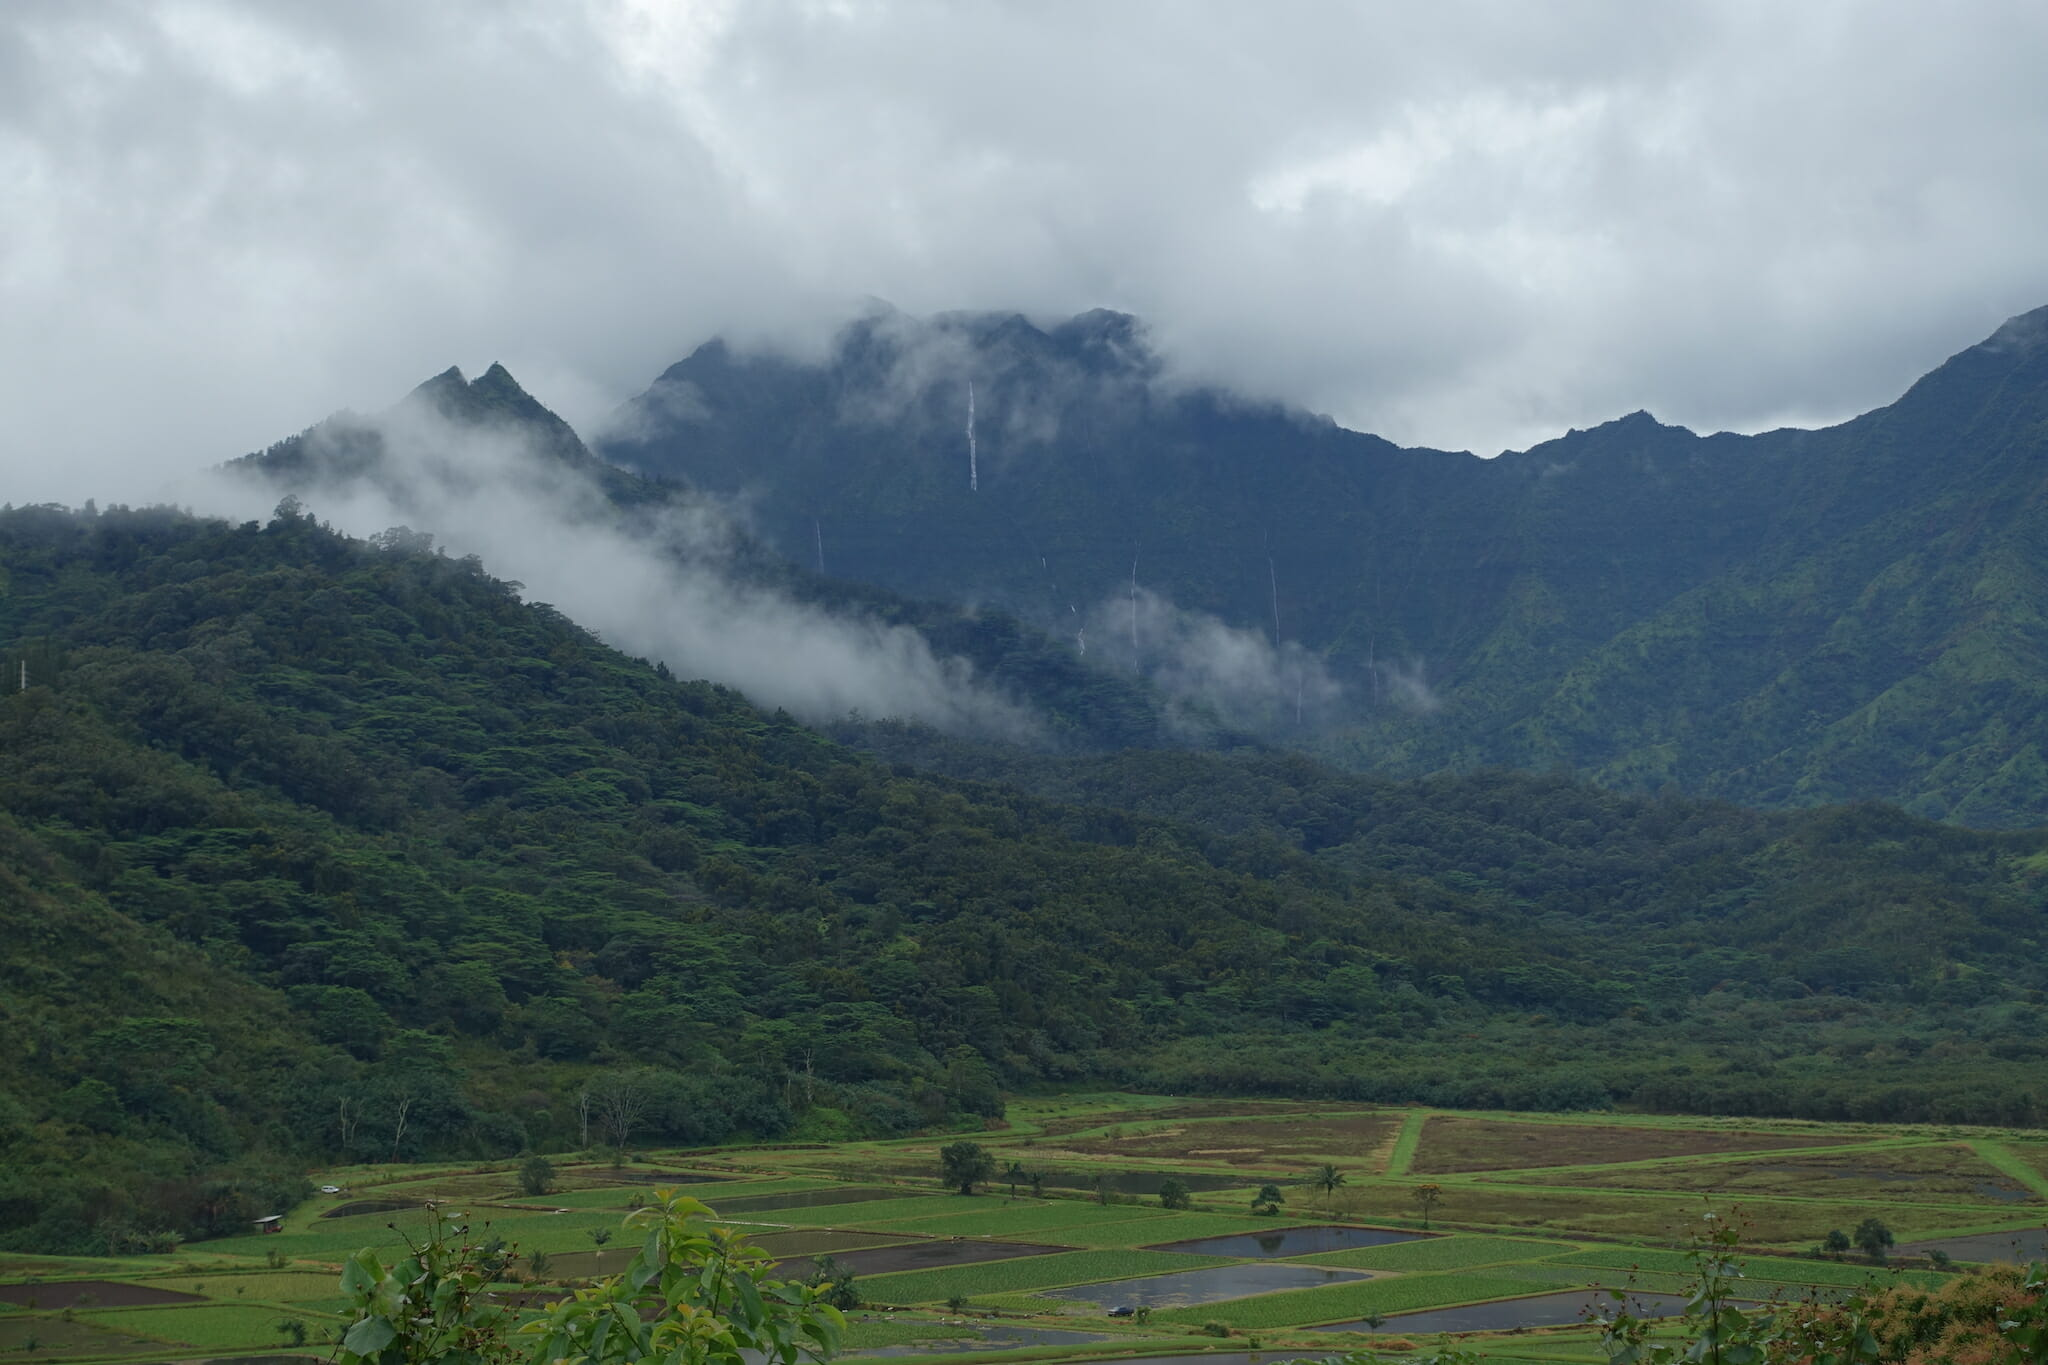 view of field and waterfalls in the mountains from Hanalei Overlook